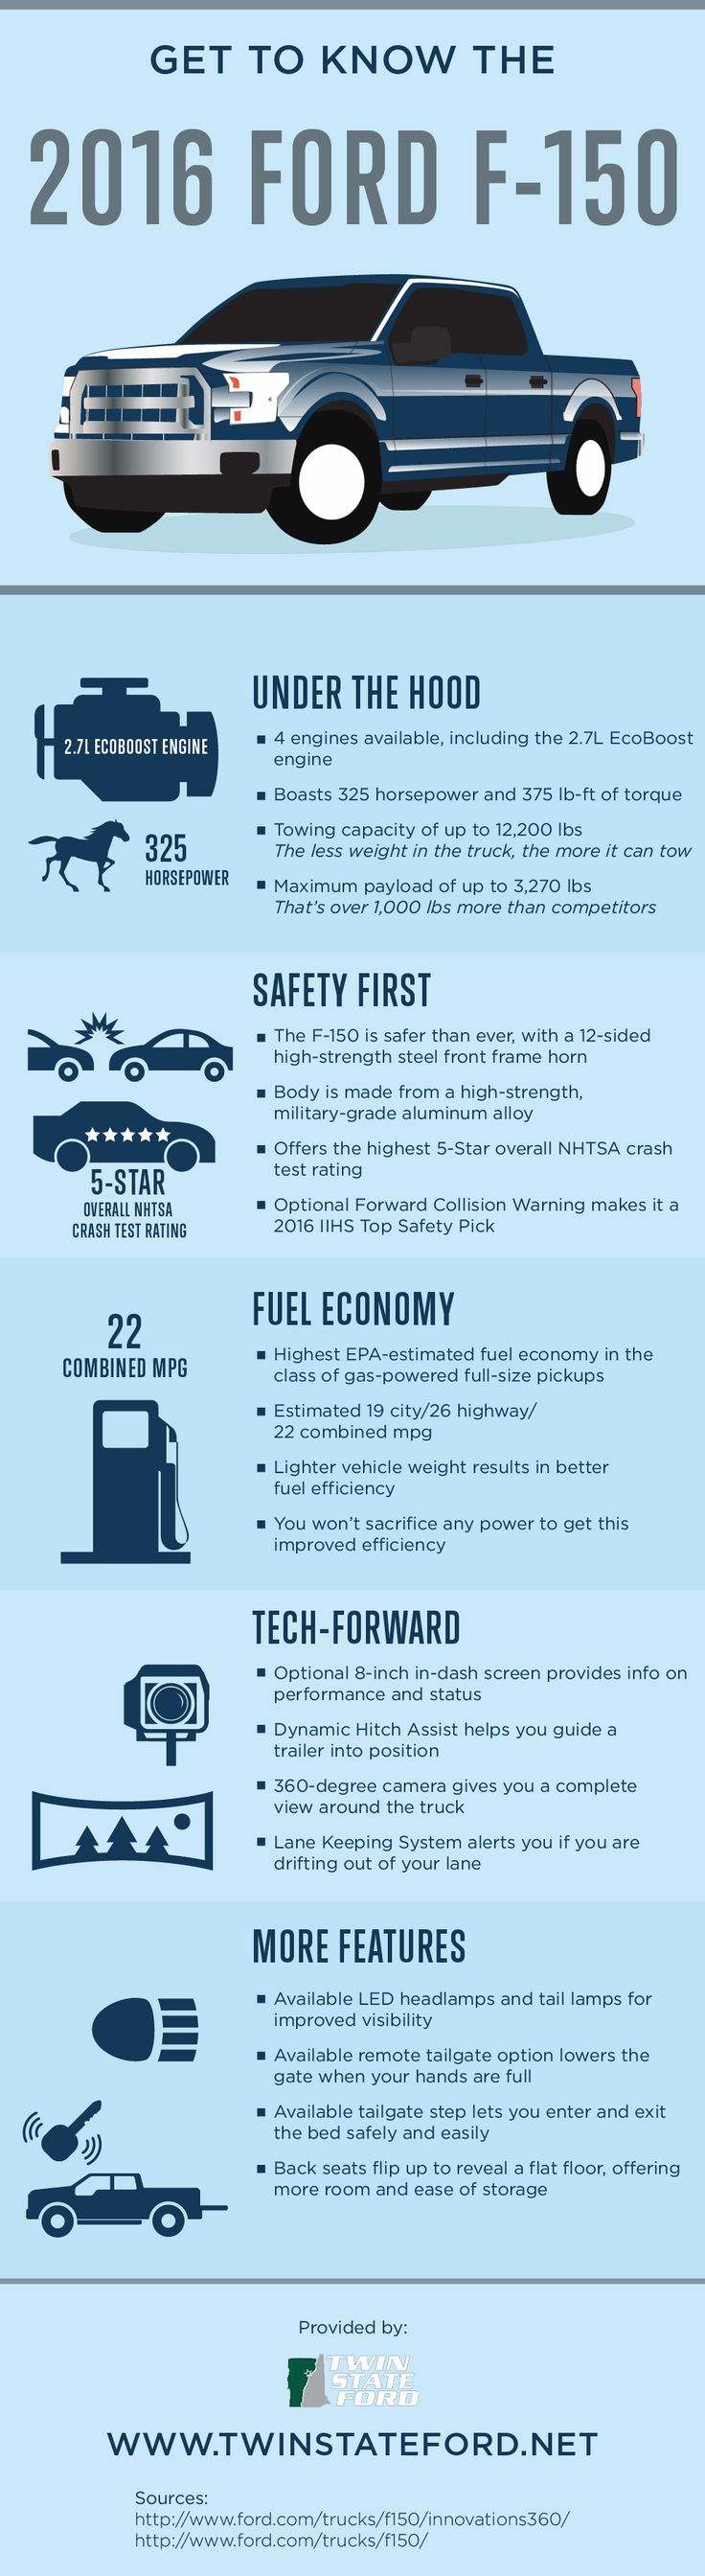 The 2016 ford f 150 has the highest epa estimated fuel economy when compared